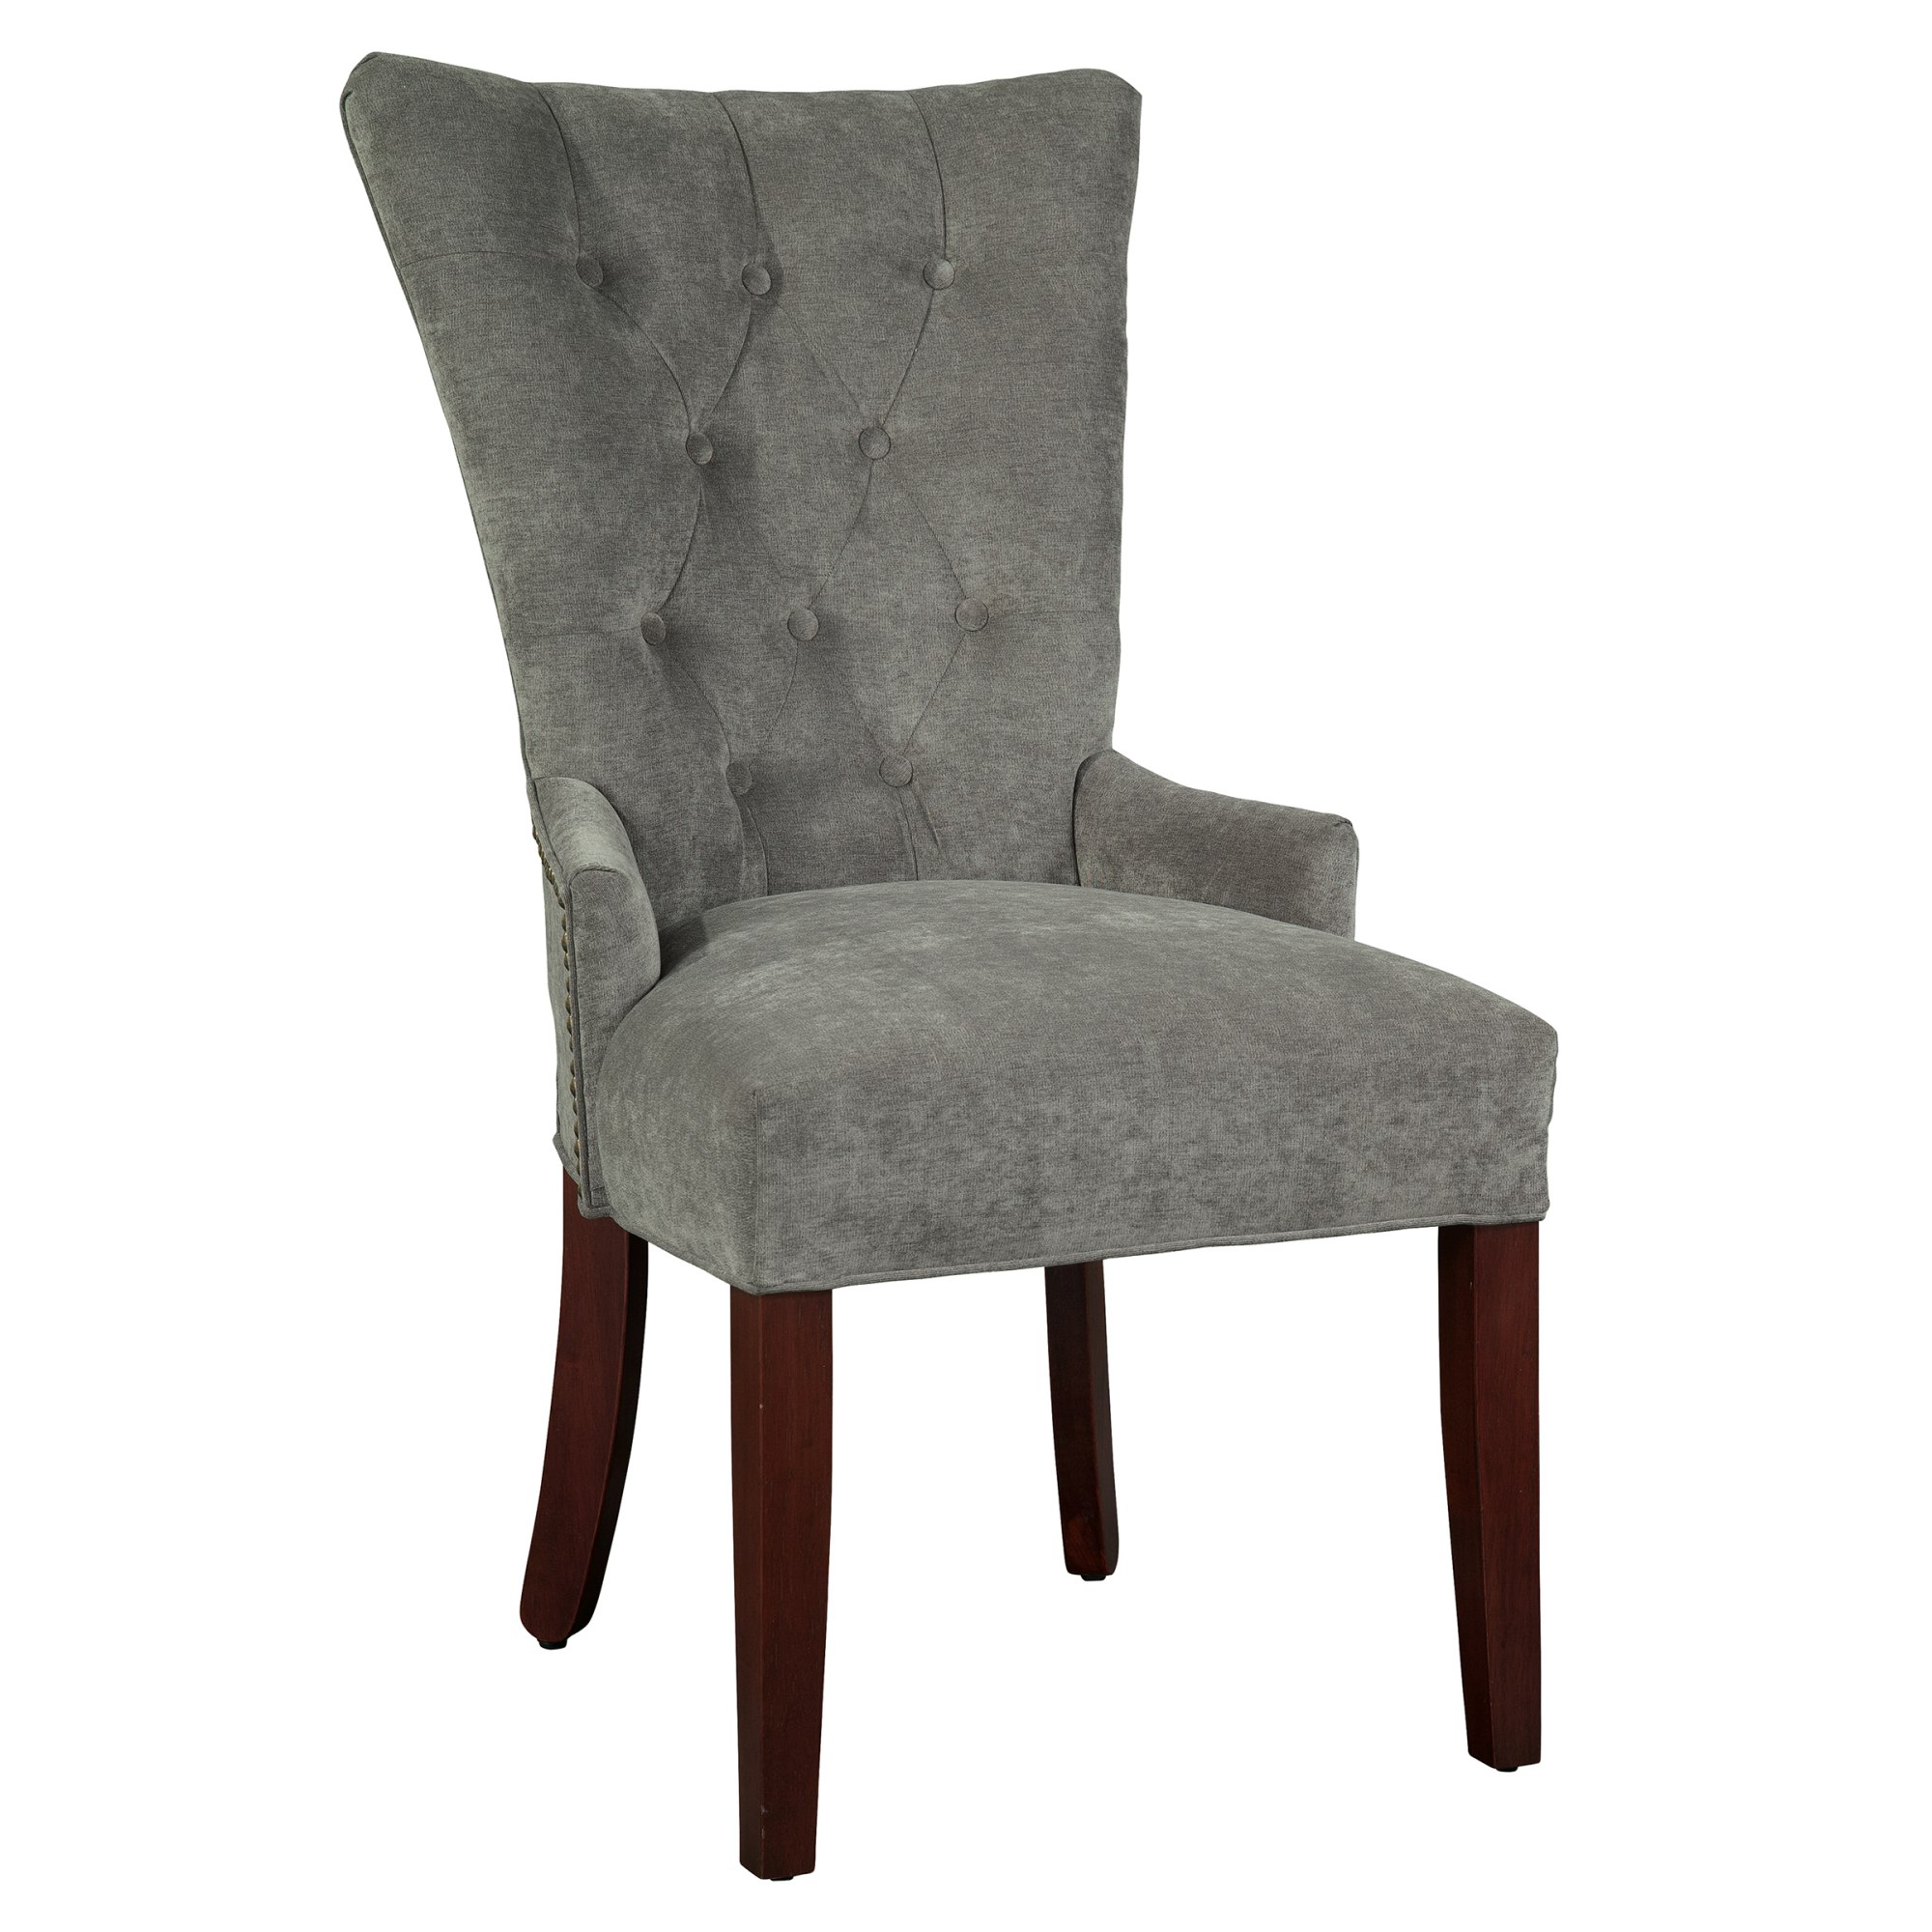 Image for 7256 Sandra Dining Chair with Nailheads from Hekman Official Website